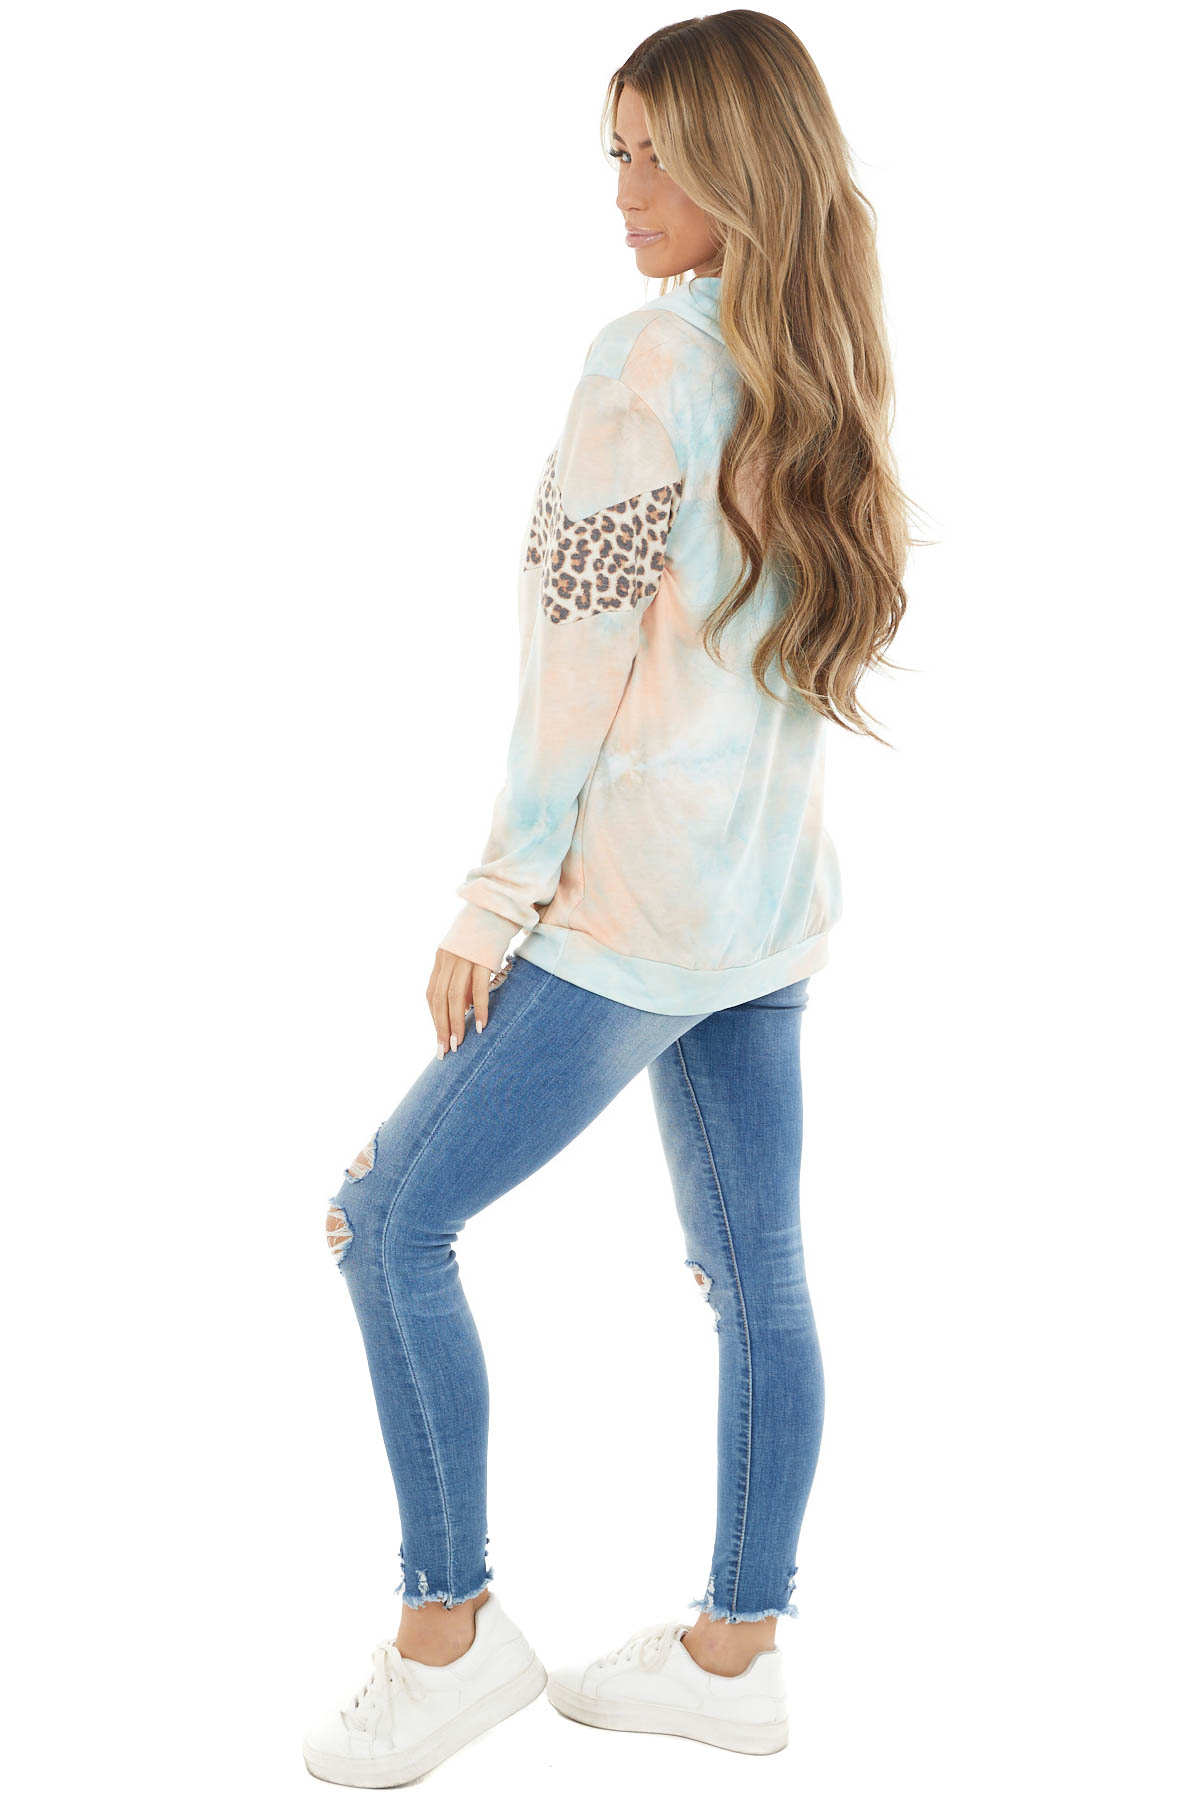 Peach and Baby Blue Tie Dye Hoodie with Leopard Print Detail